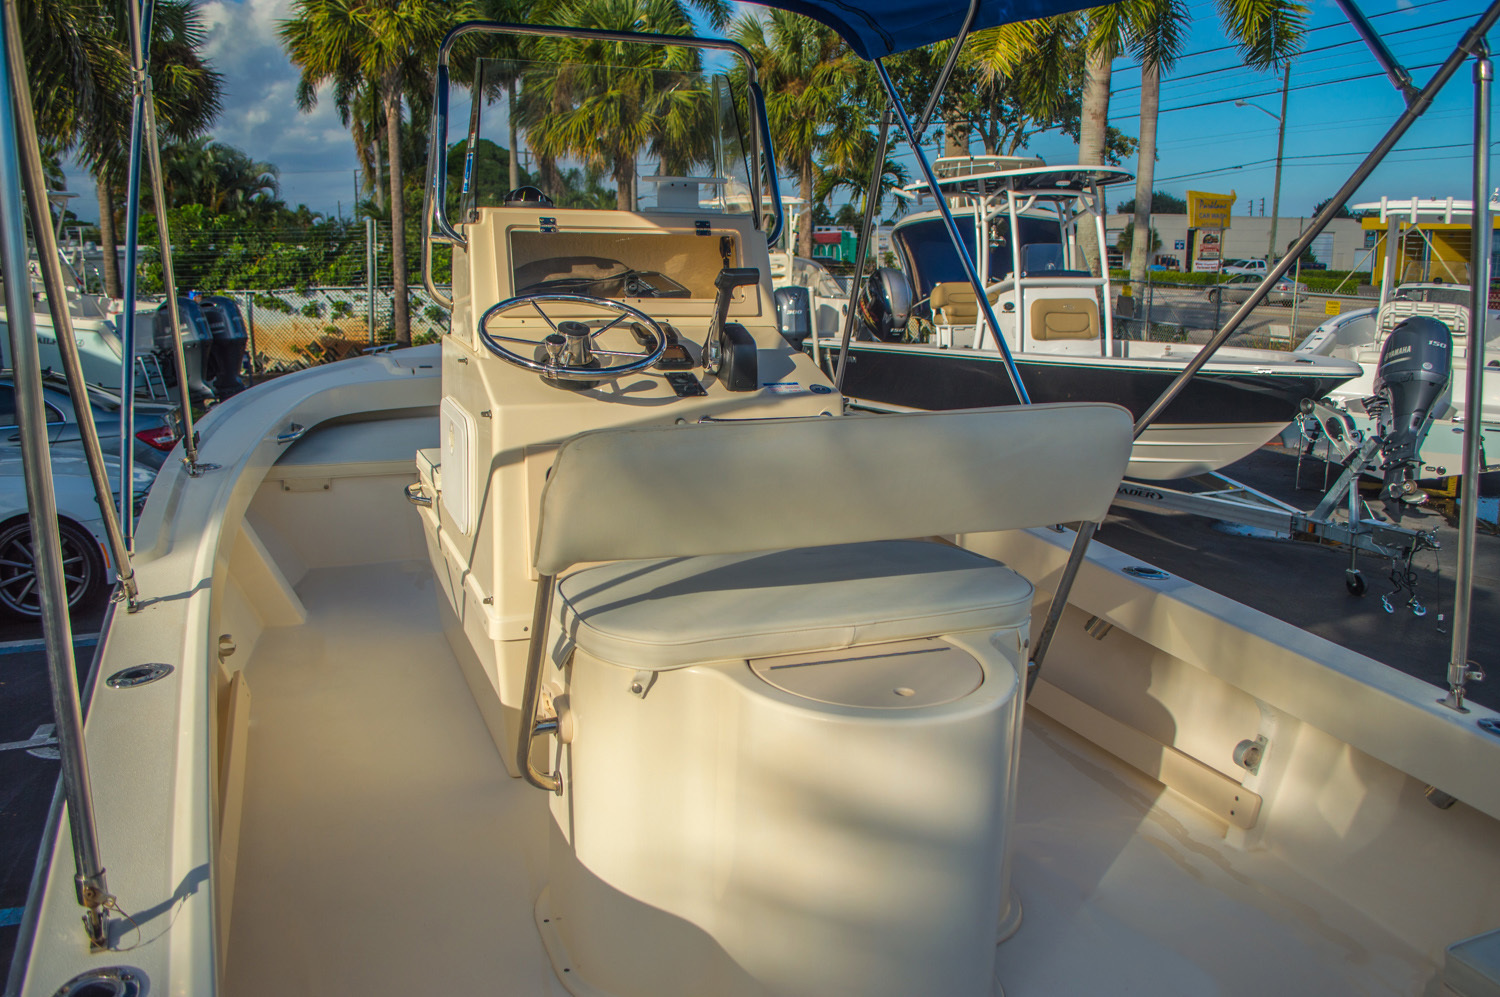 Thumbnail 14 for Used 2008 PARKER 1801 Center Console boat for sale in West Palm Beach, FL